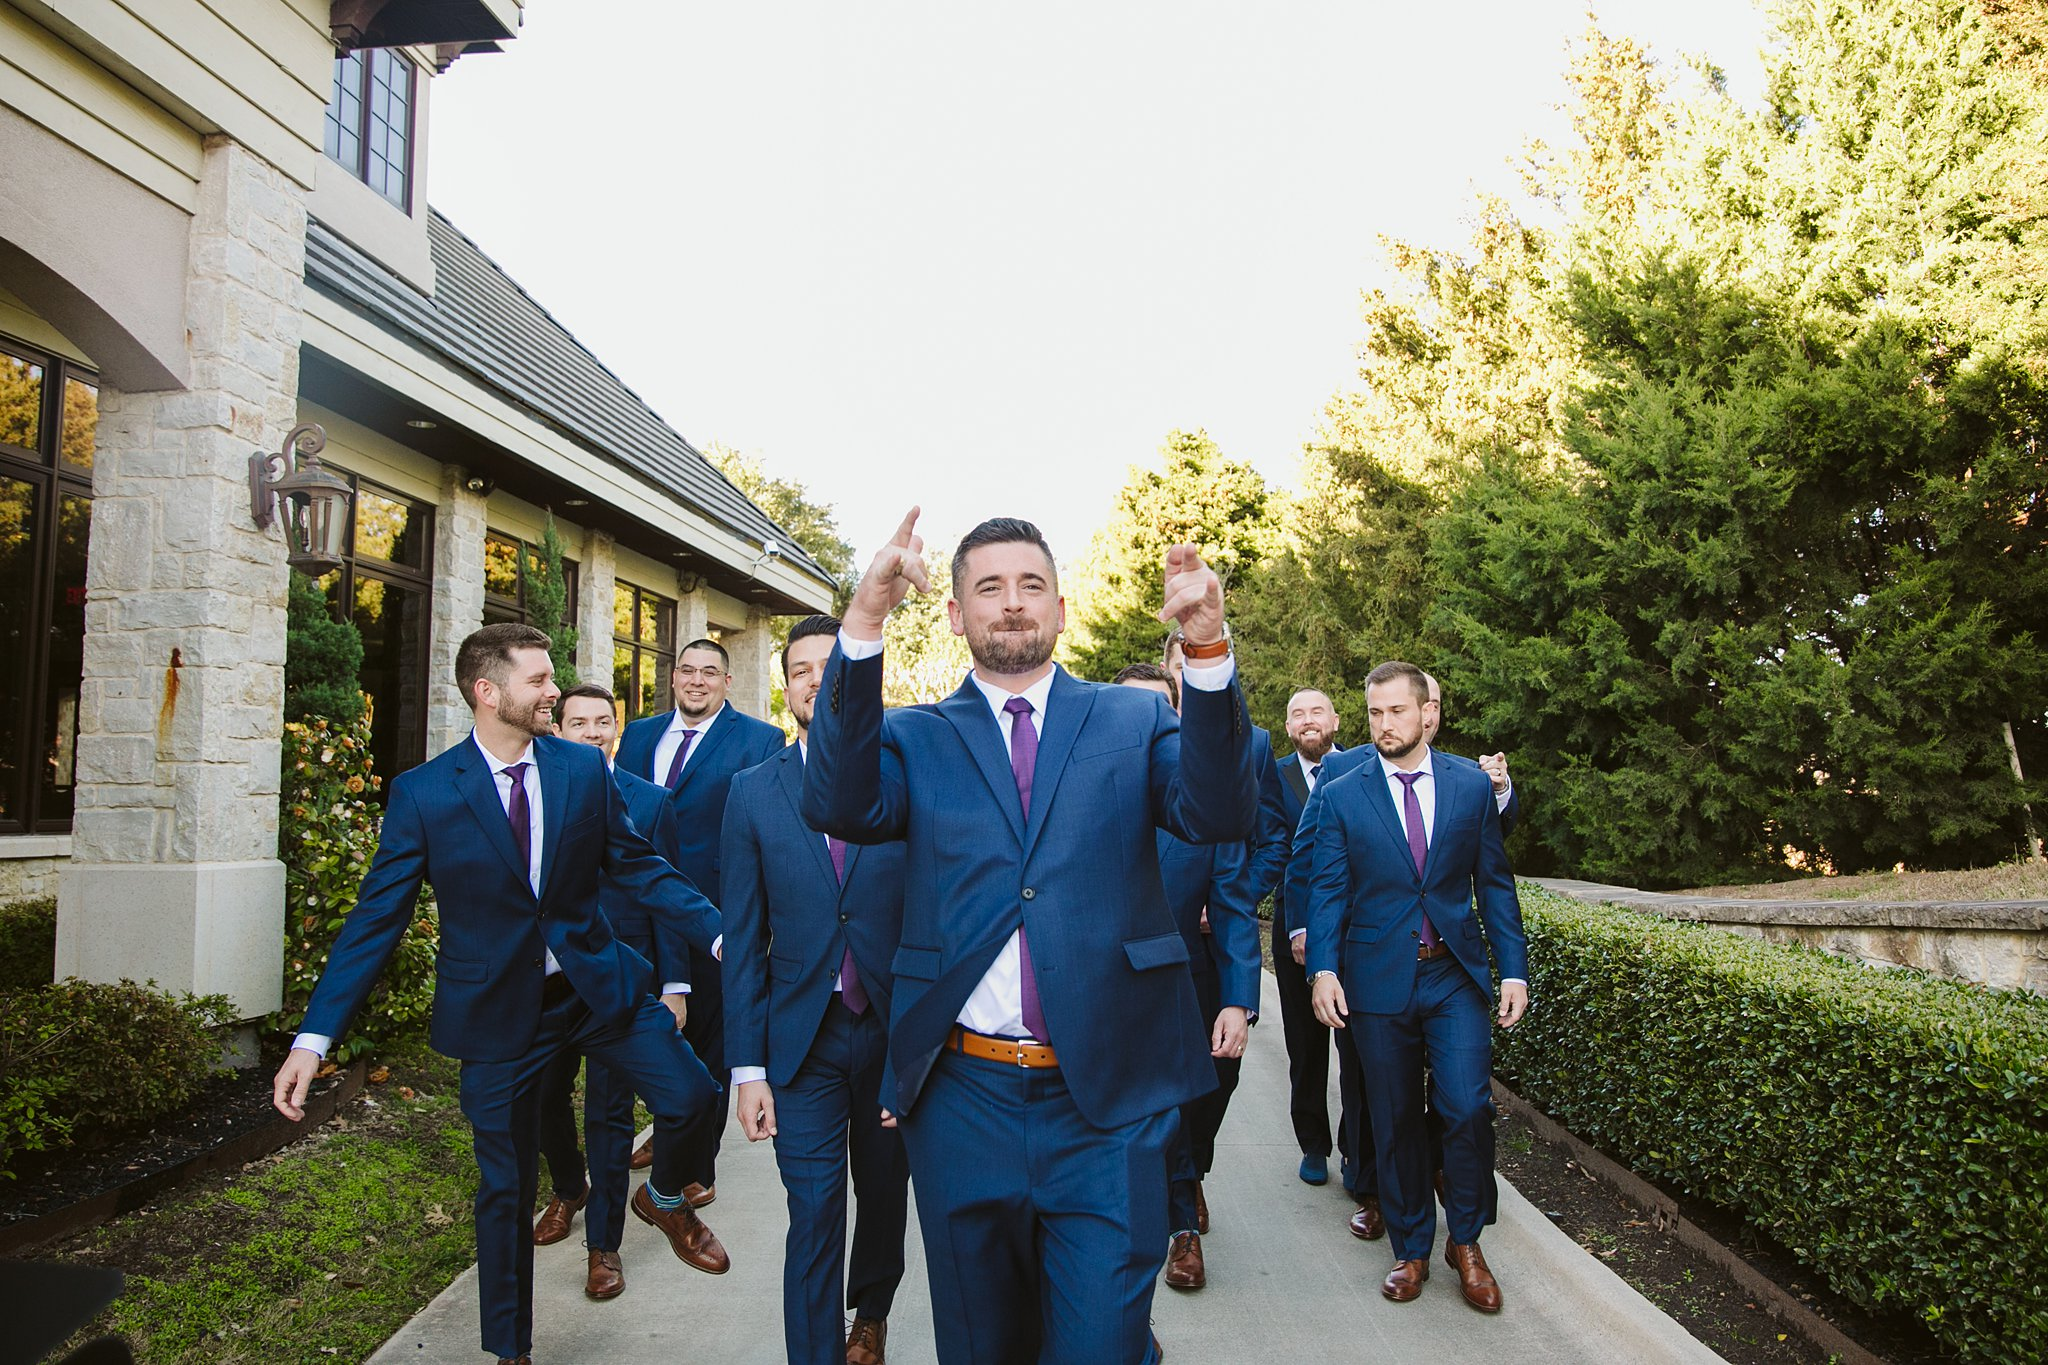 unique grooms and groomsmen picture